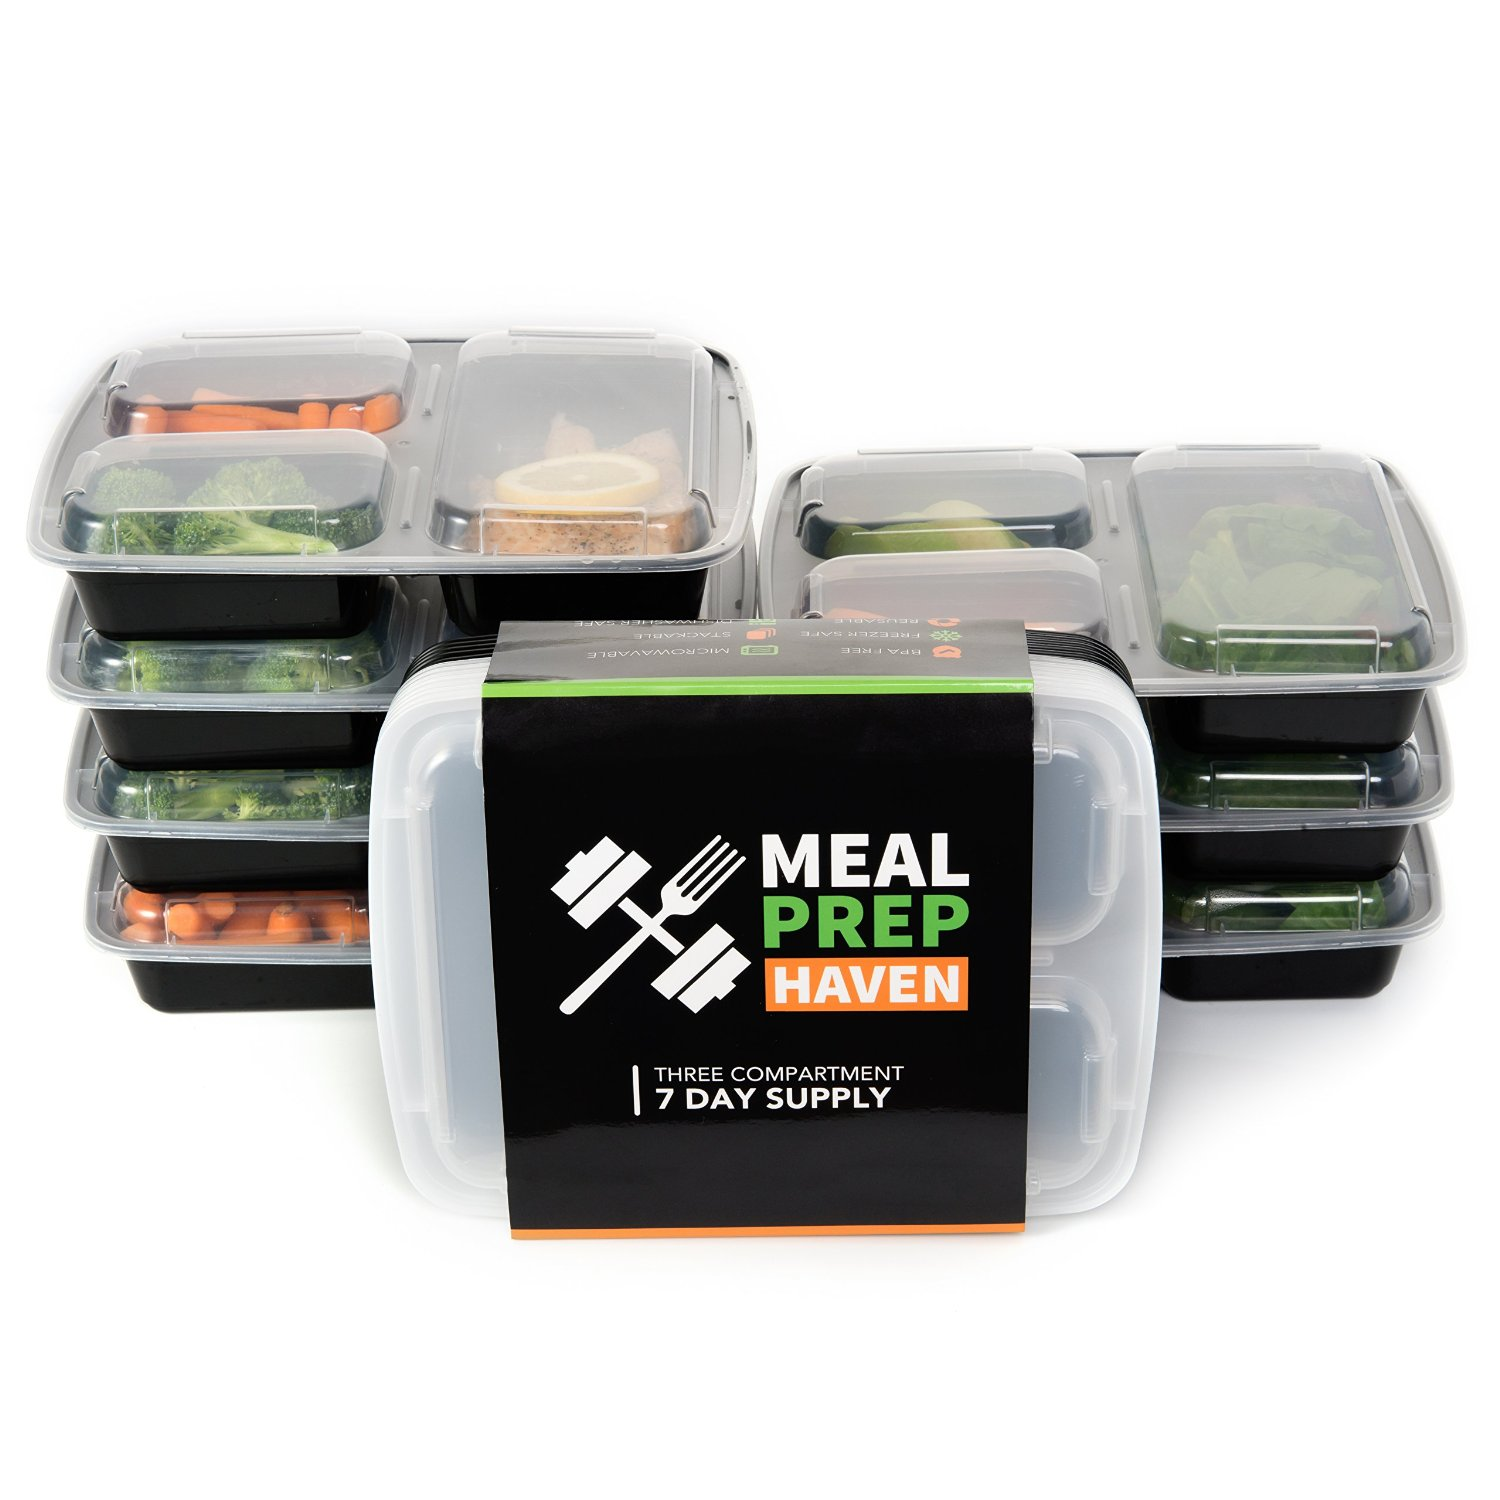 Meal Prep Haven 3 Compartment Food Storage Containers with Lids